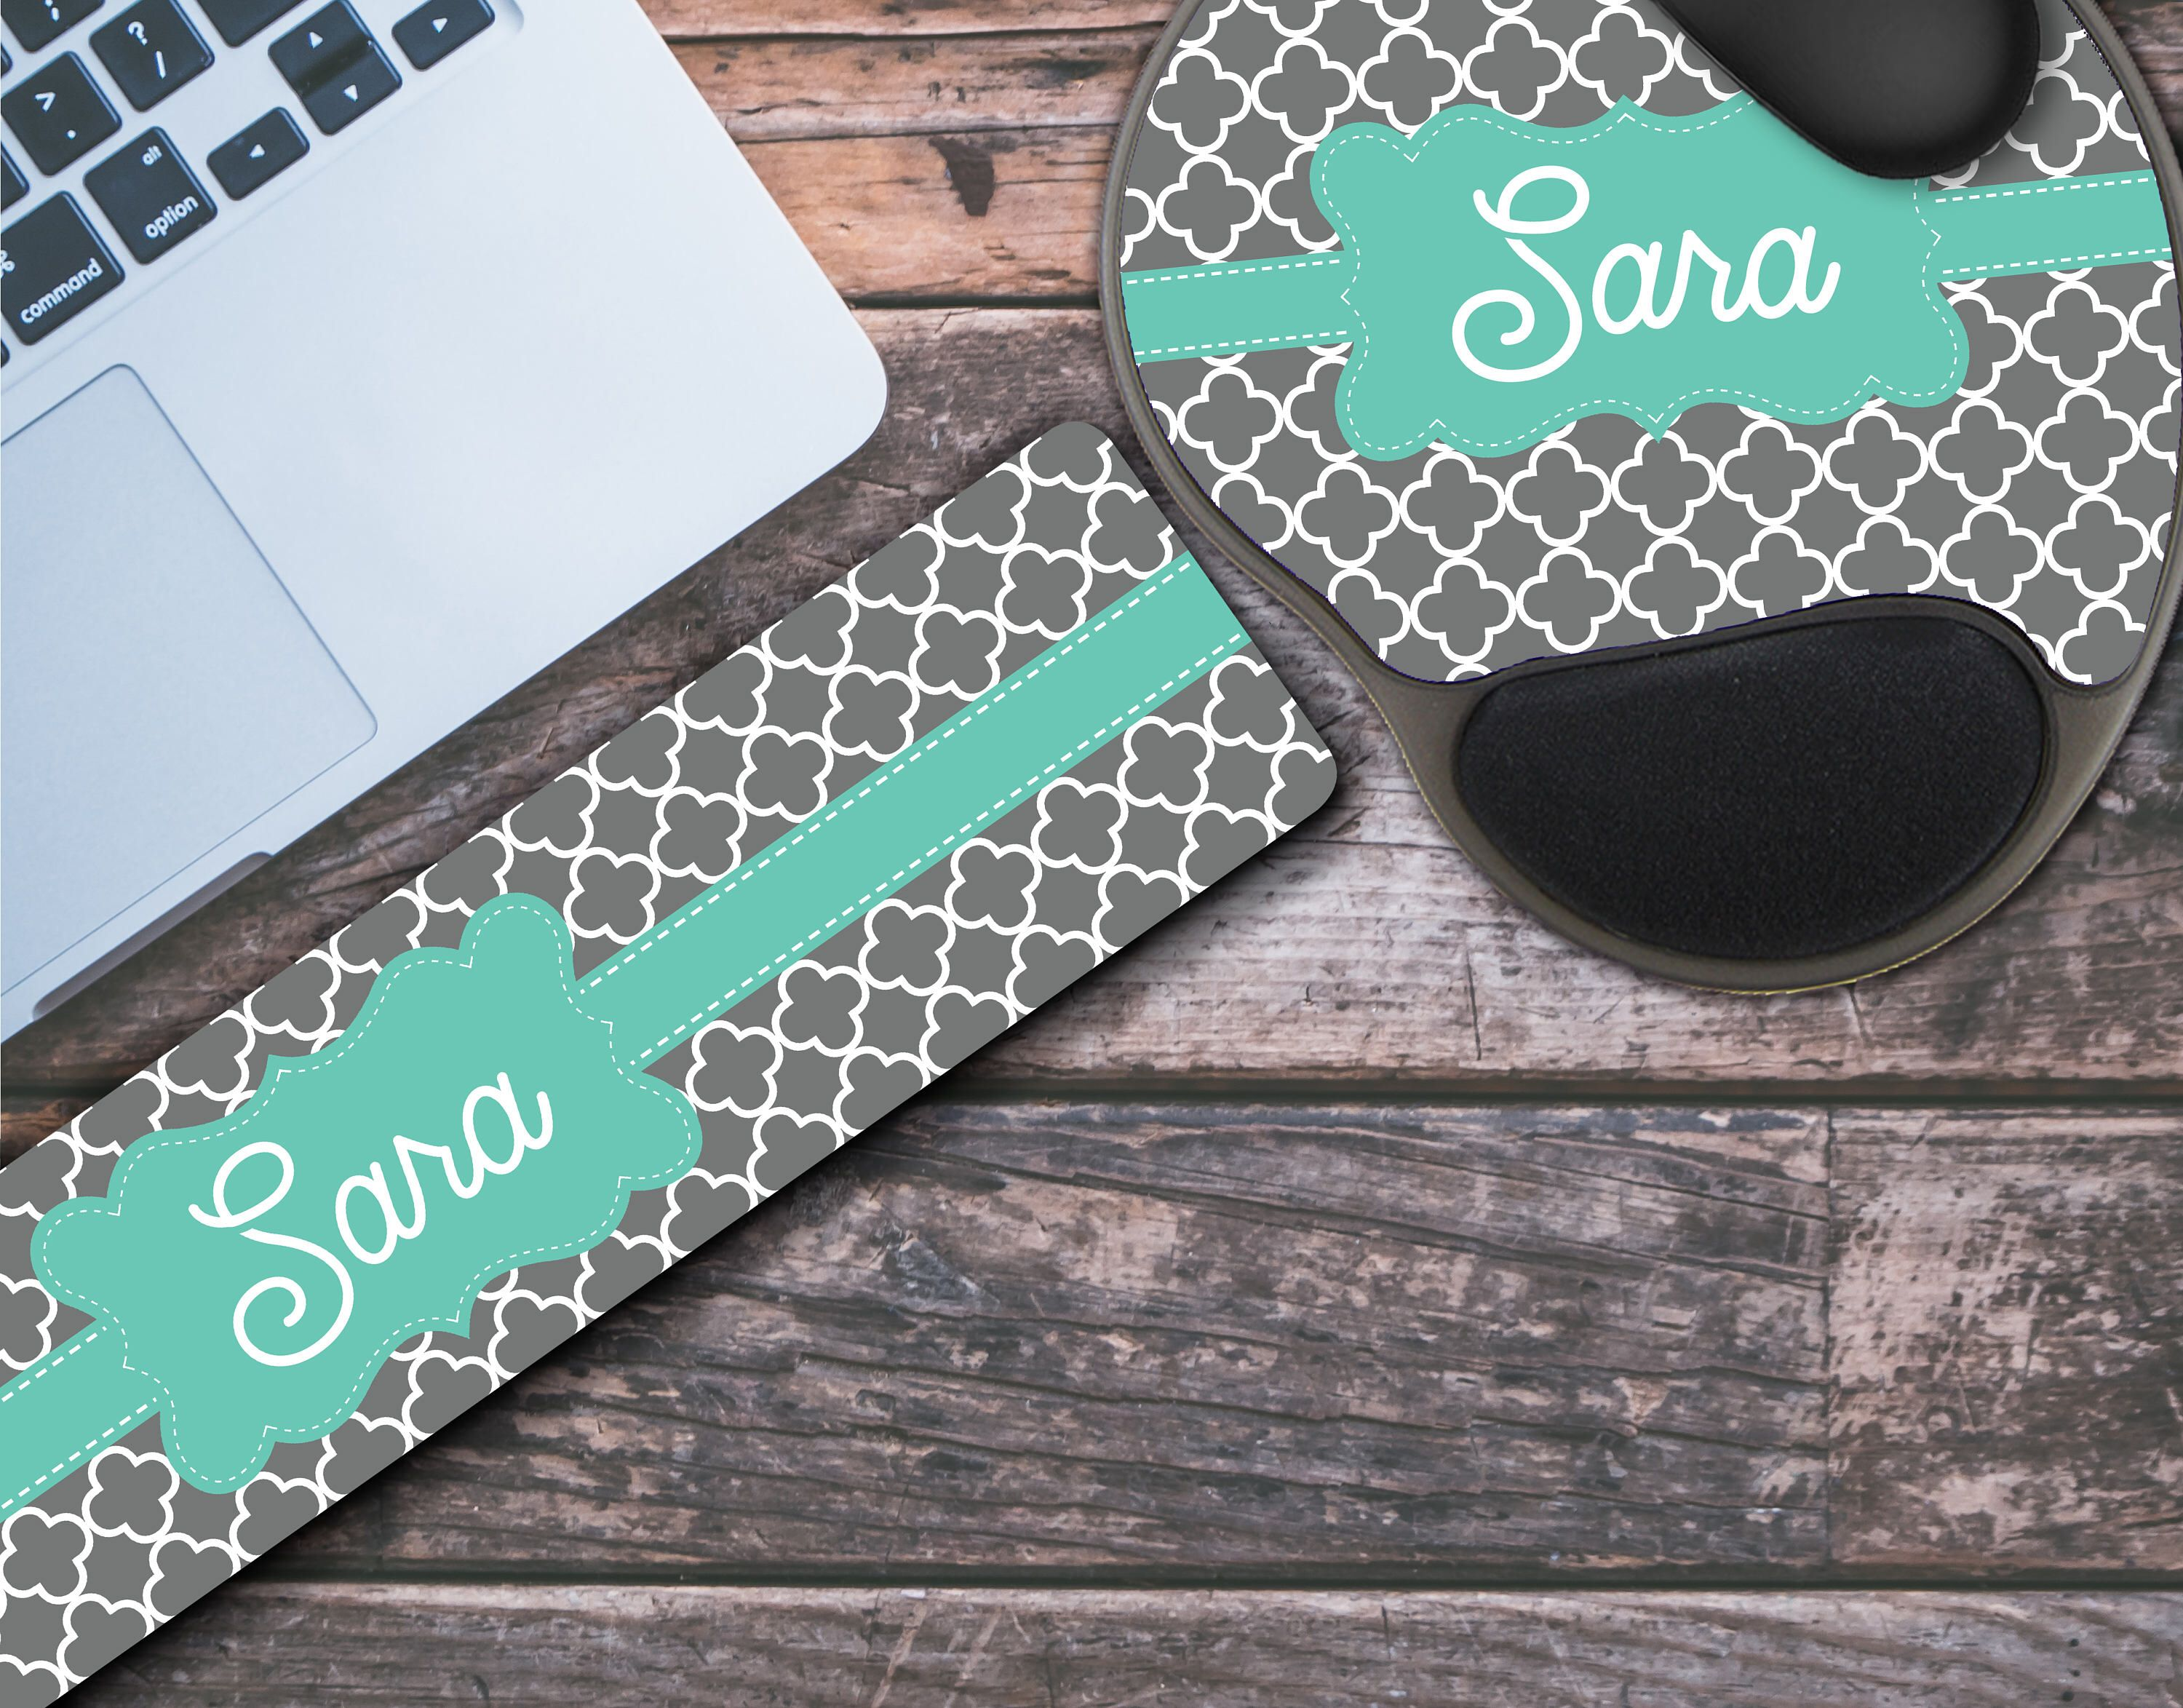 Personalized Keyboard Wrist Rest Mouse Pad With